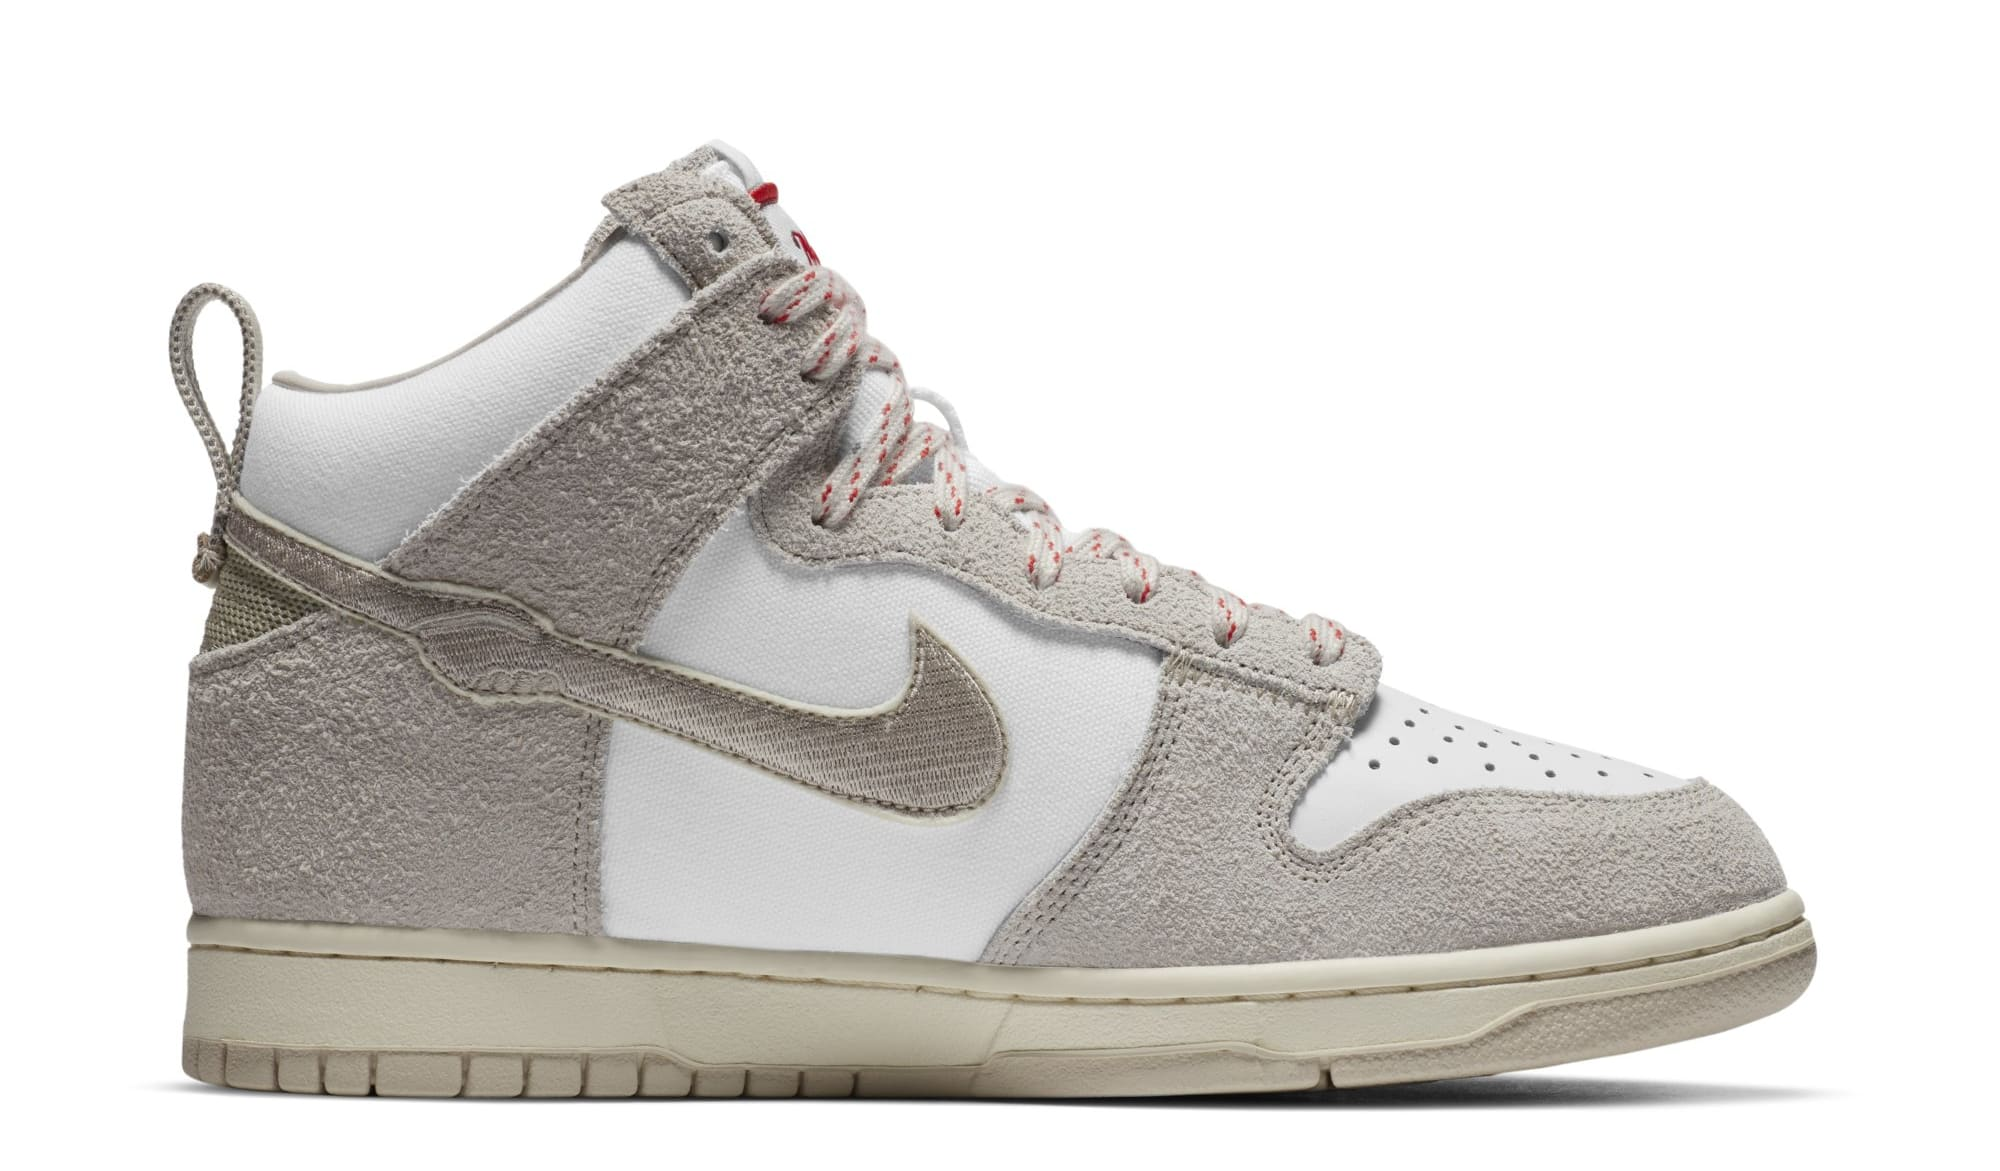 Notre x Nike Dunk High 'Light Orewood Brown/White' (Medial)